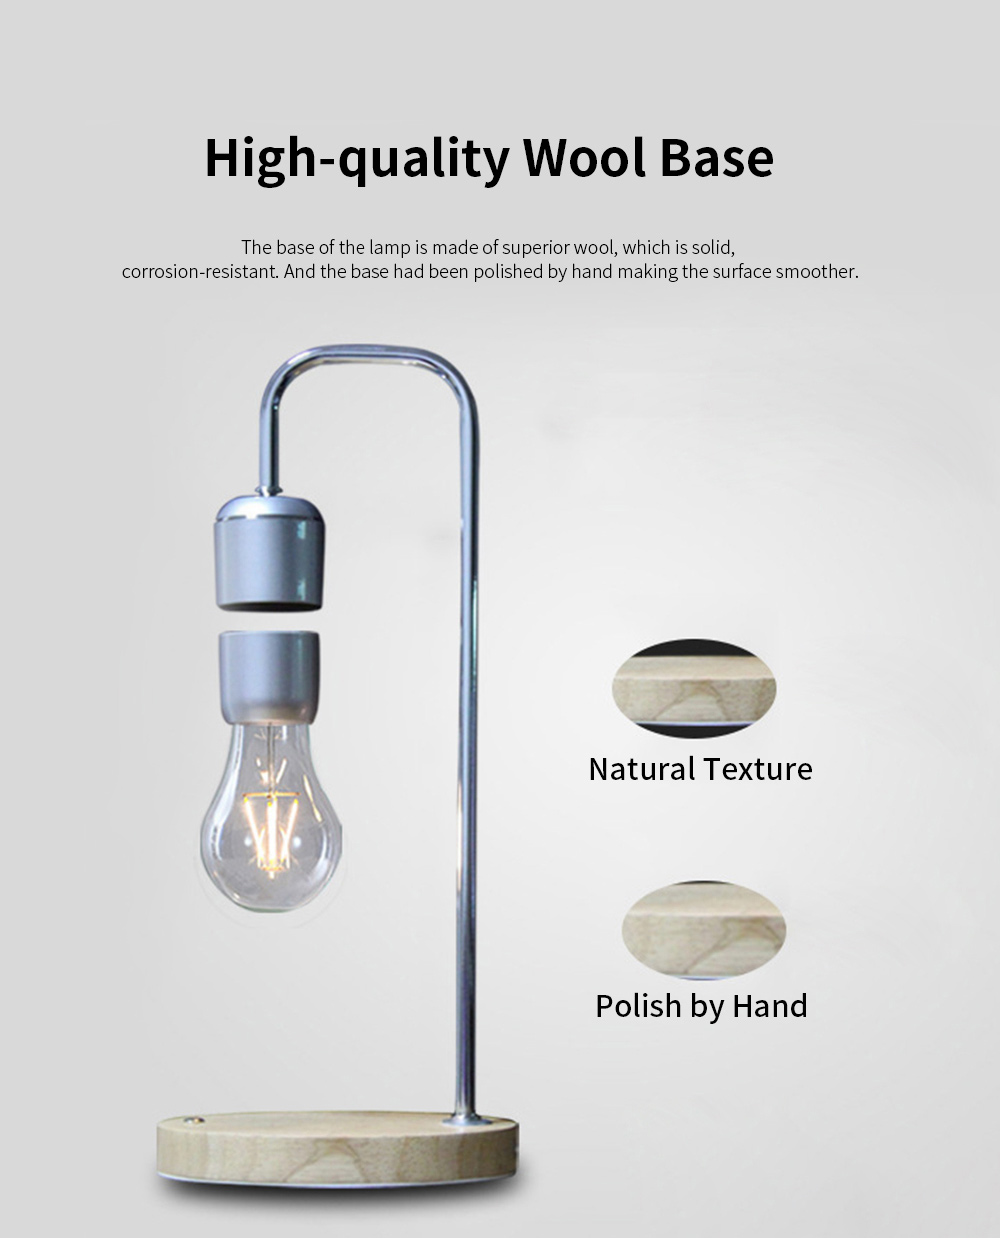 Creative Stylish Energy-conservation Mute Magnetic Suspension Light Table Lamp with Inductive Switch Anti-skid Base 6